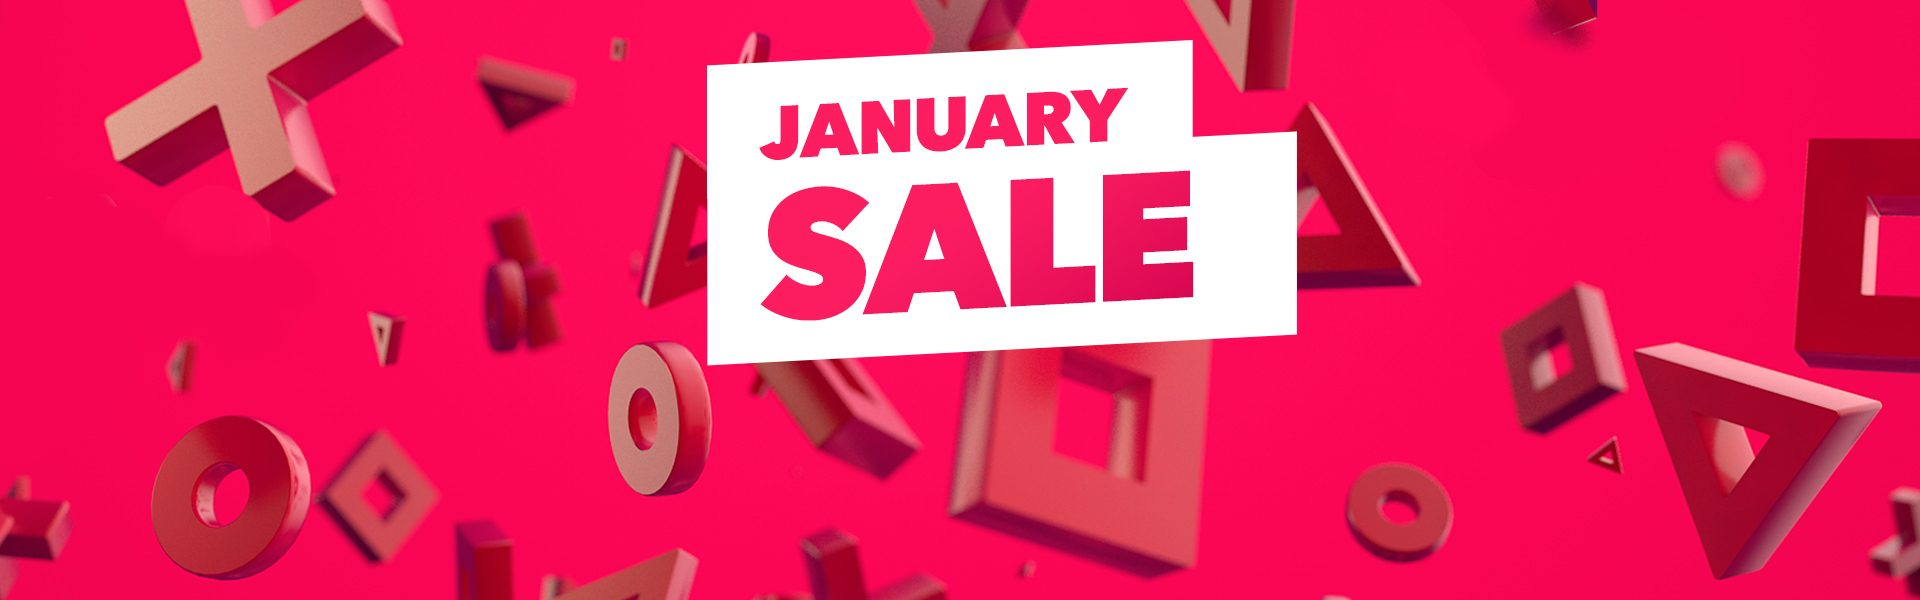 Playstation Store S Massive January Sale Starts Today Playstation Blog